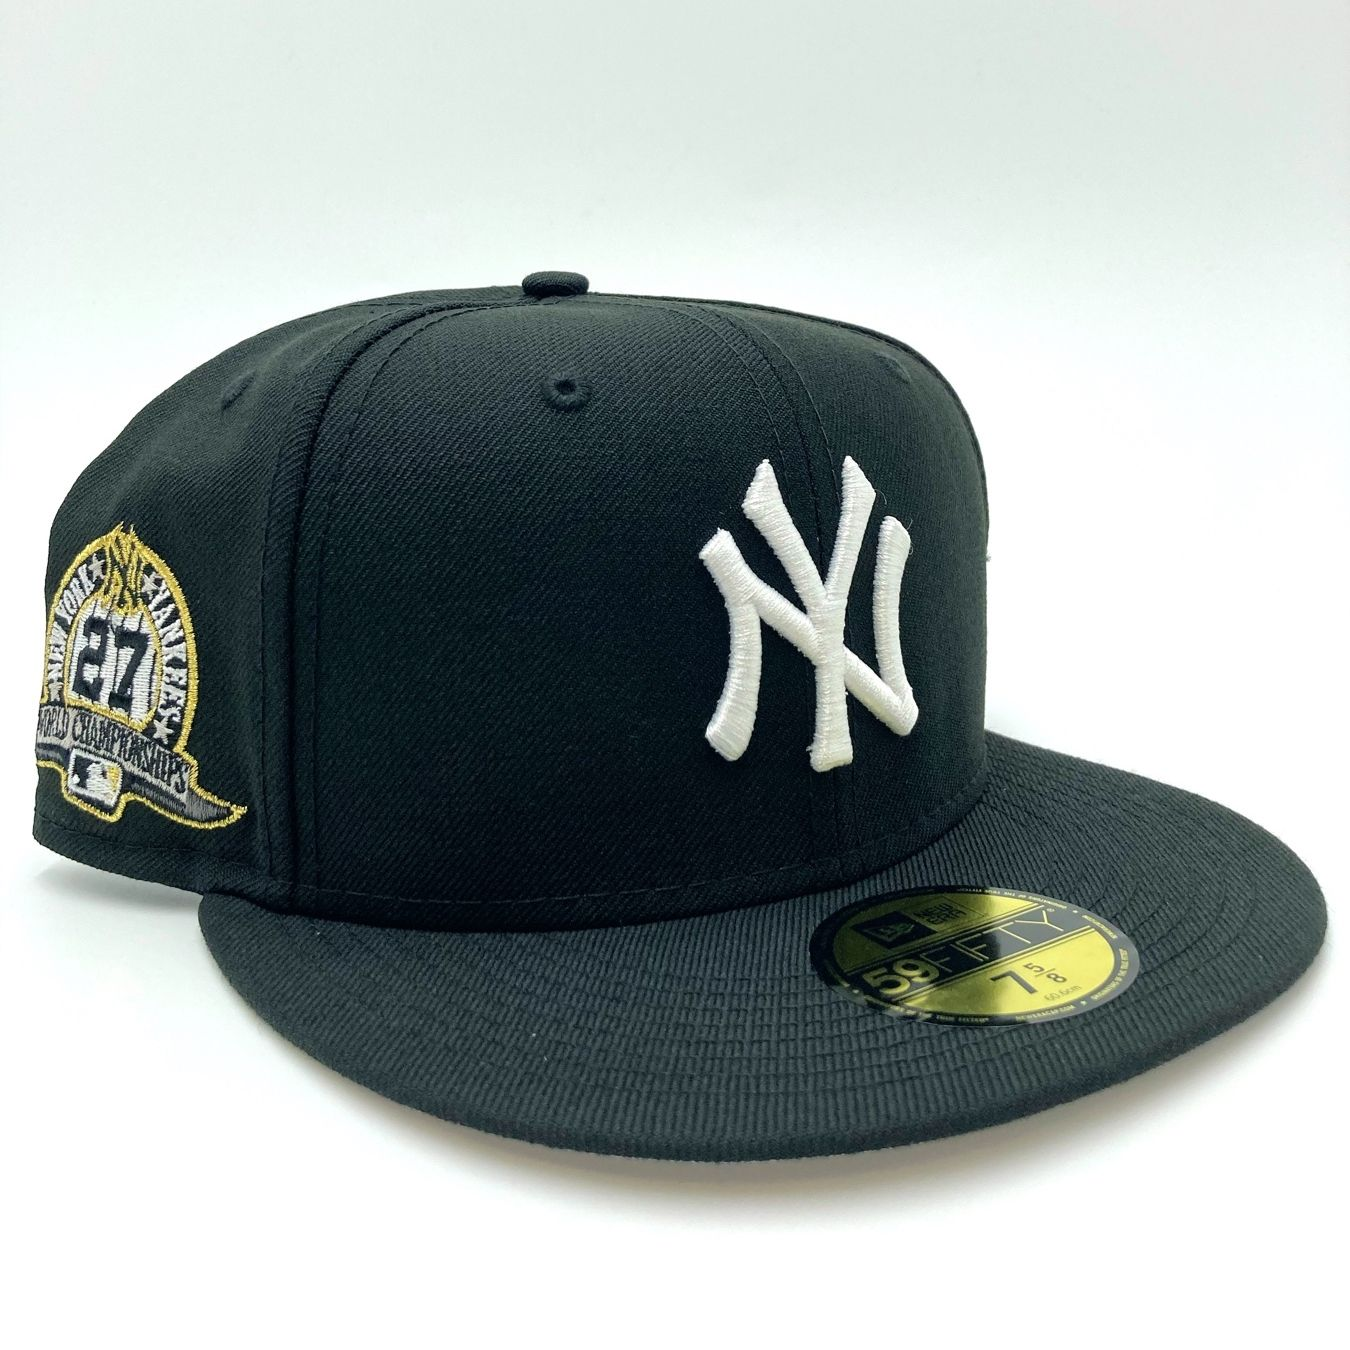 New York Yankees 27 World Champions Side Patch New Era Black And White 59fifty Fitted Hat Fitted Hats Hat Stores Quality Hats